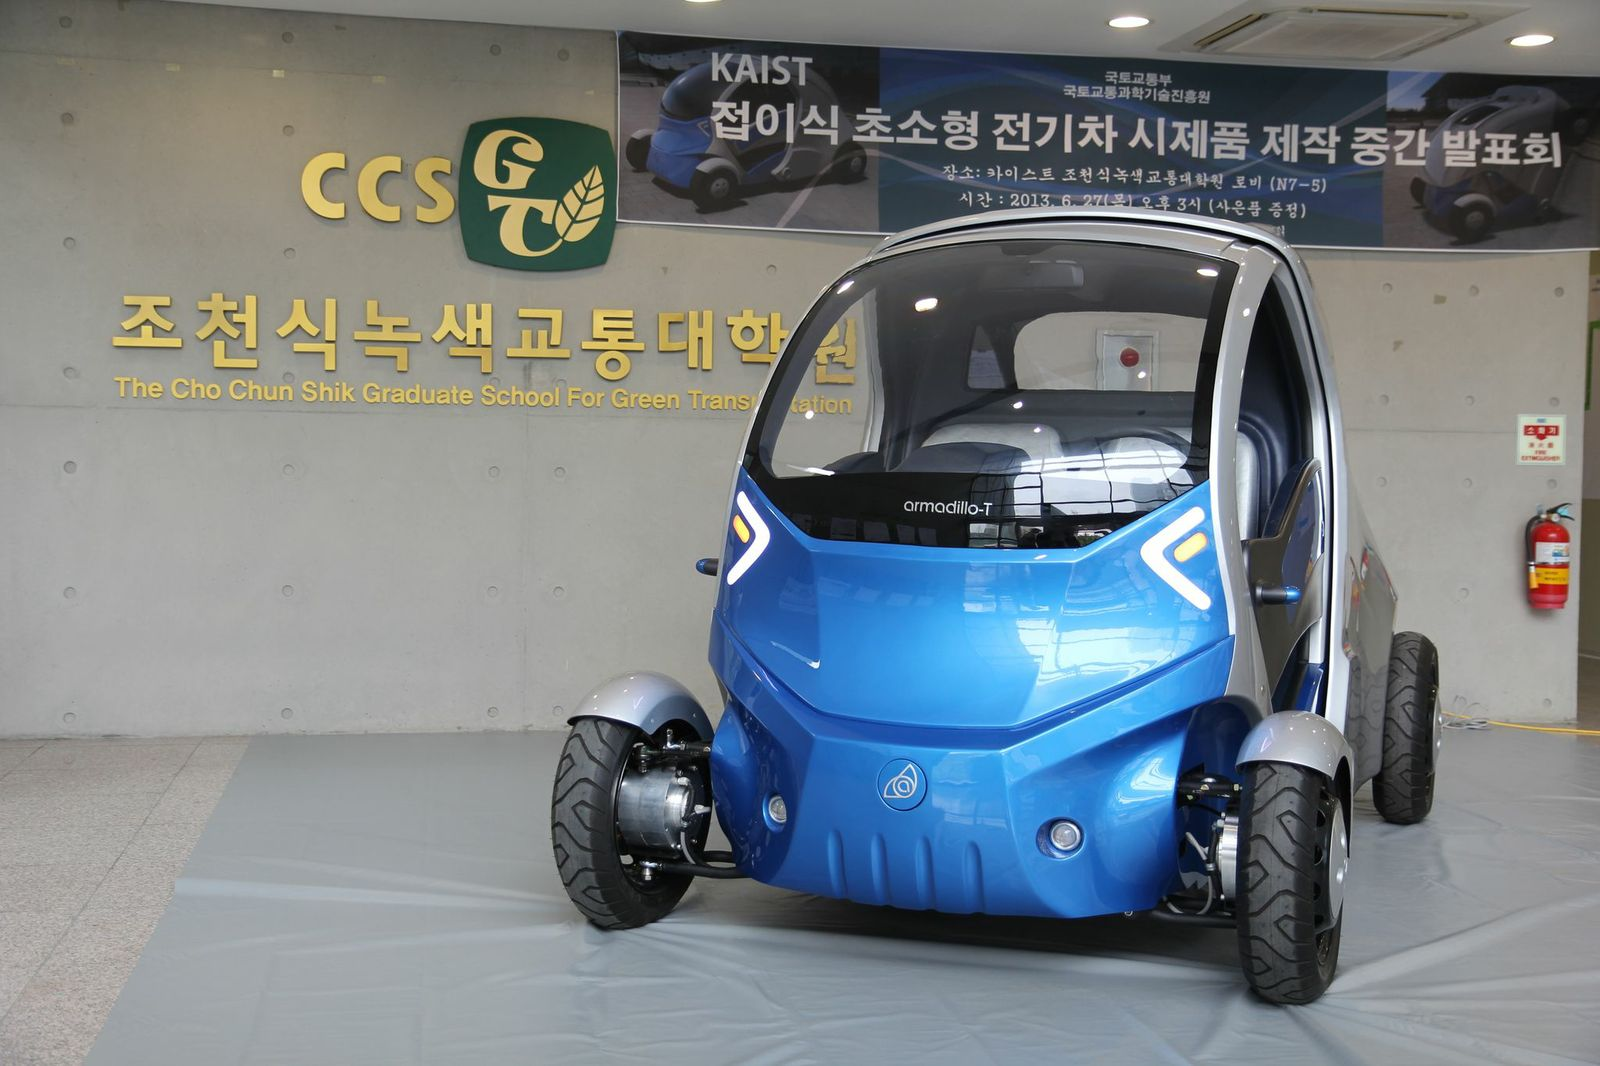 team unveils foldable micro electric car, armadillo-t (w/ video)